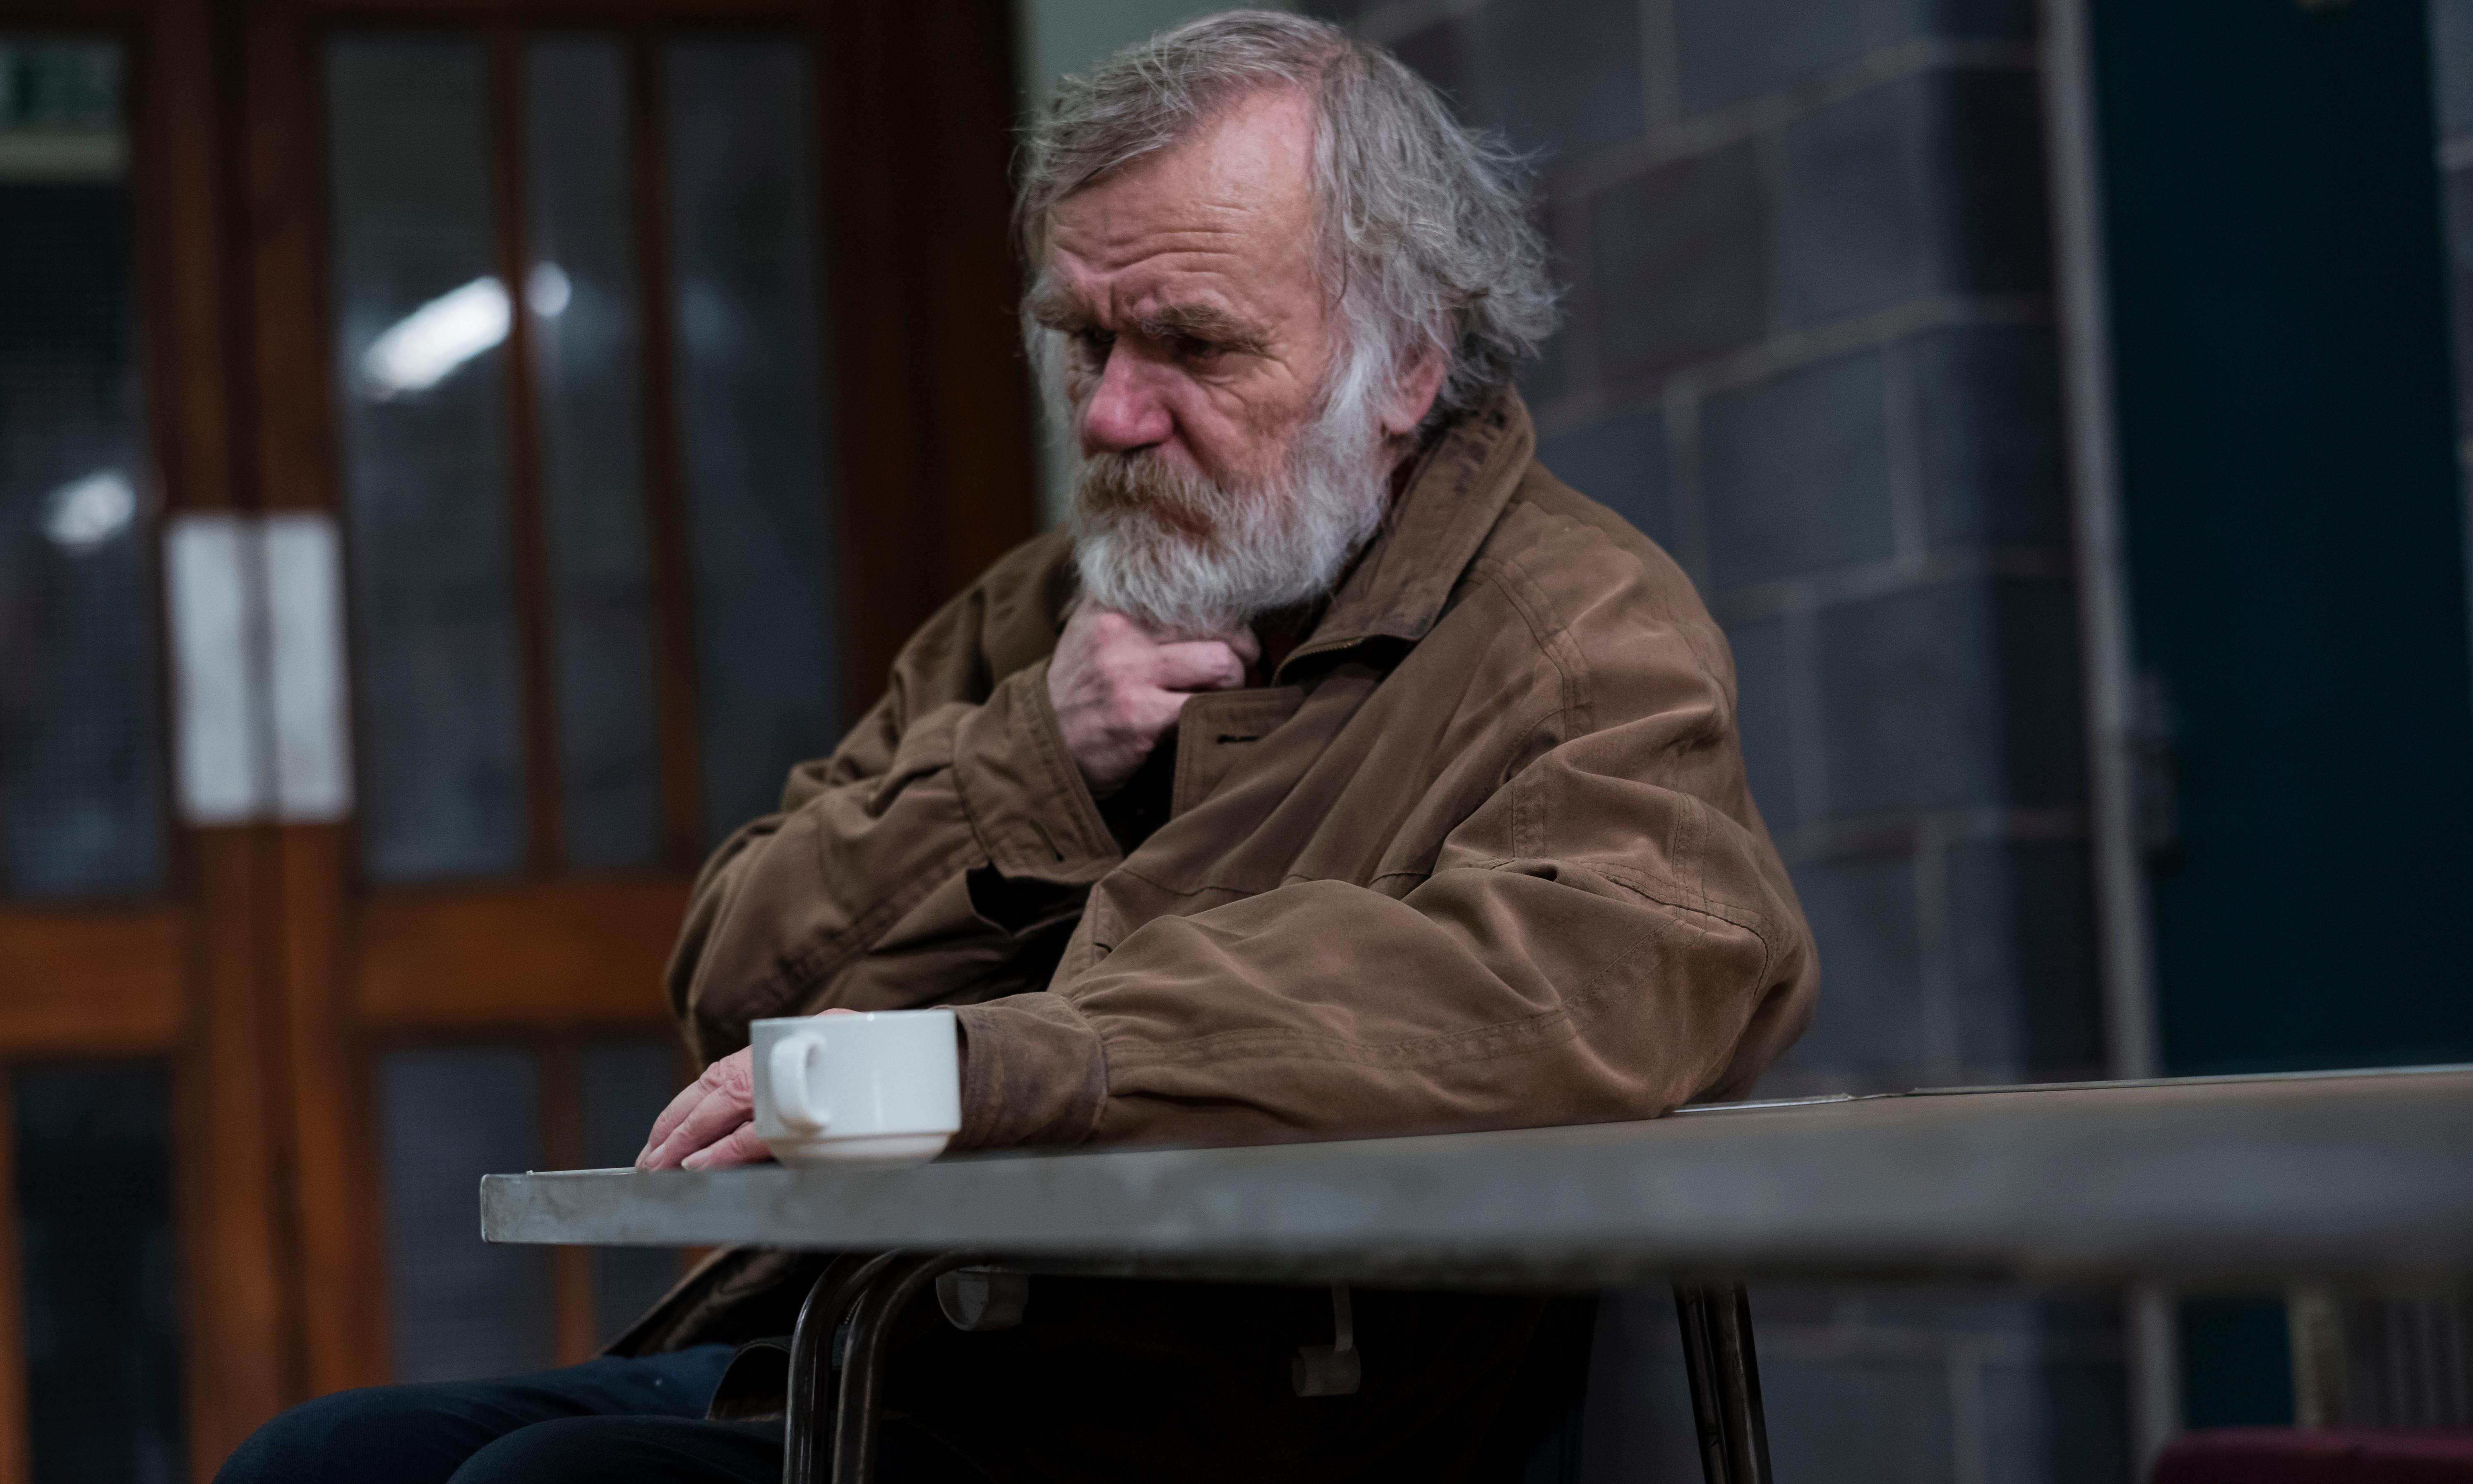 Faith, Hope and Charity review – urgent account of the austerity age